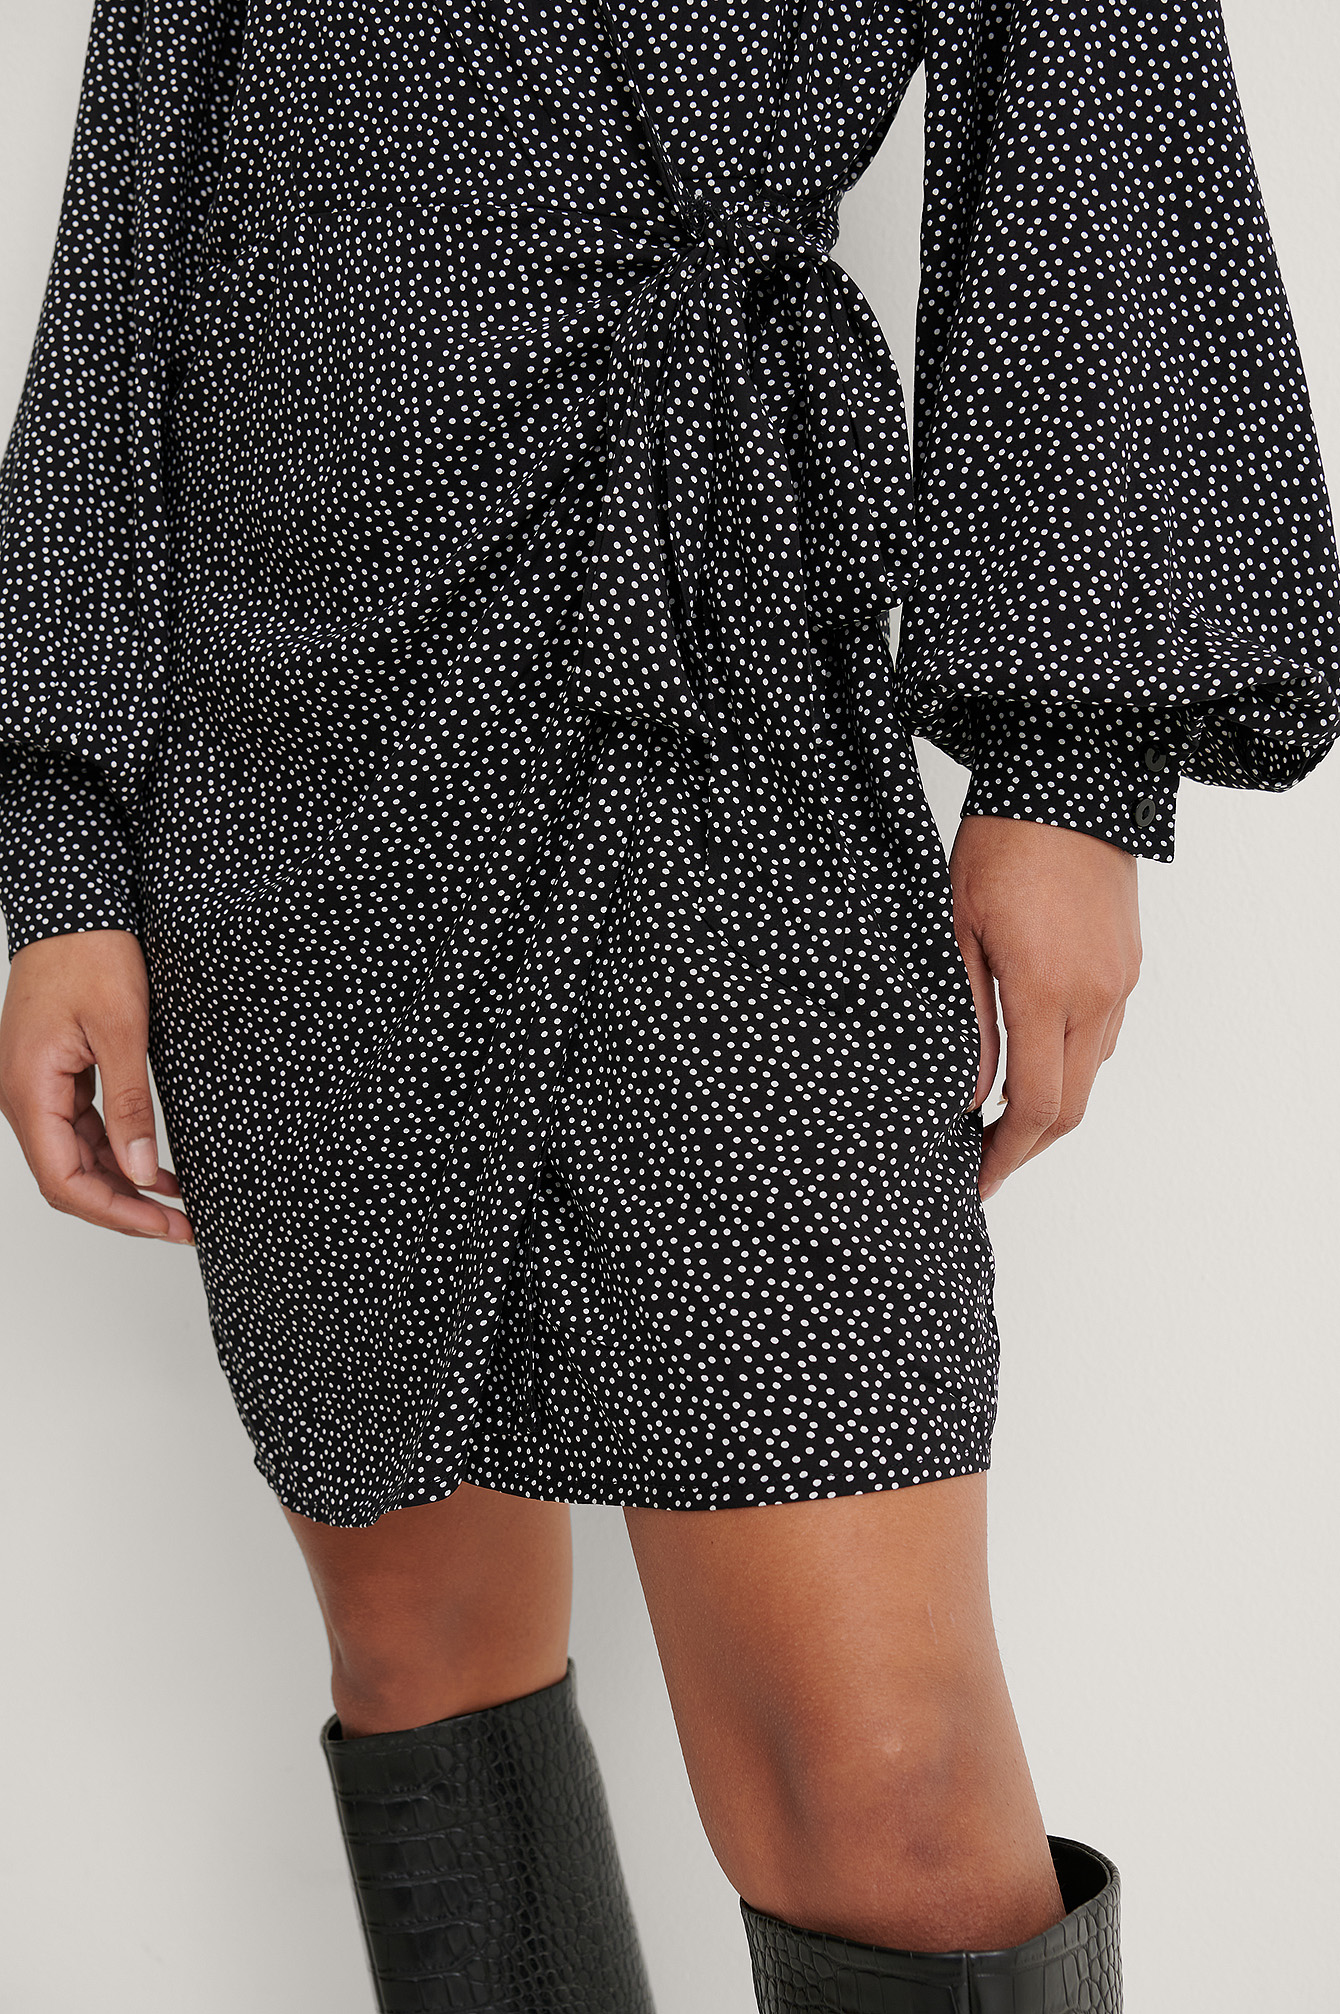 Polkadot Black/White Overlap LS V-Neck Dress